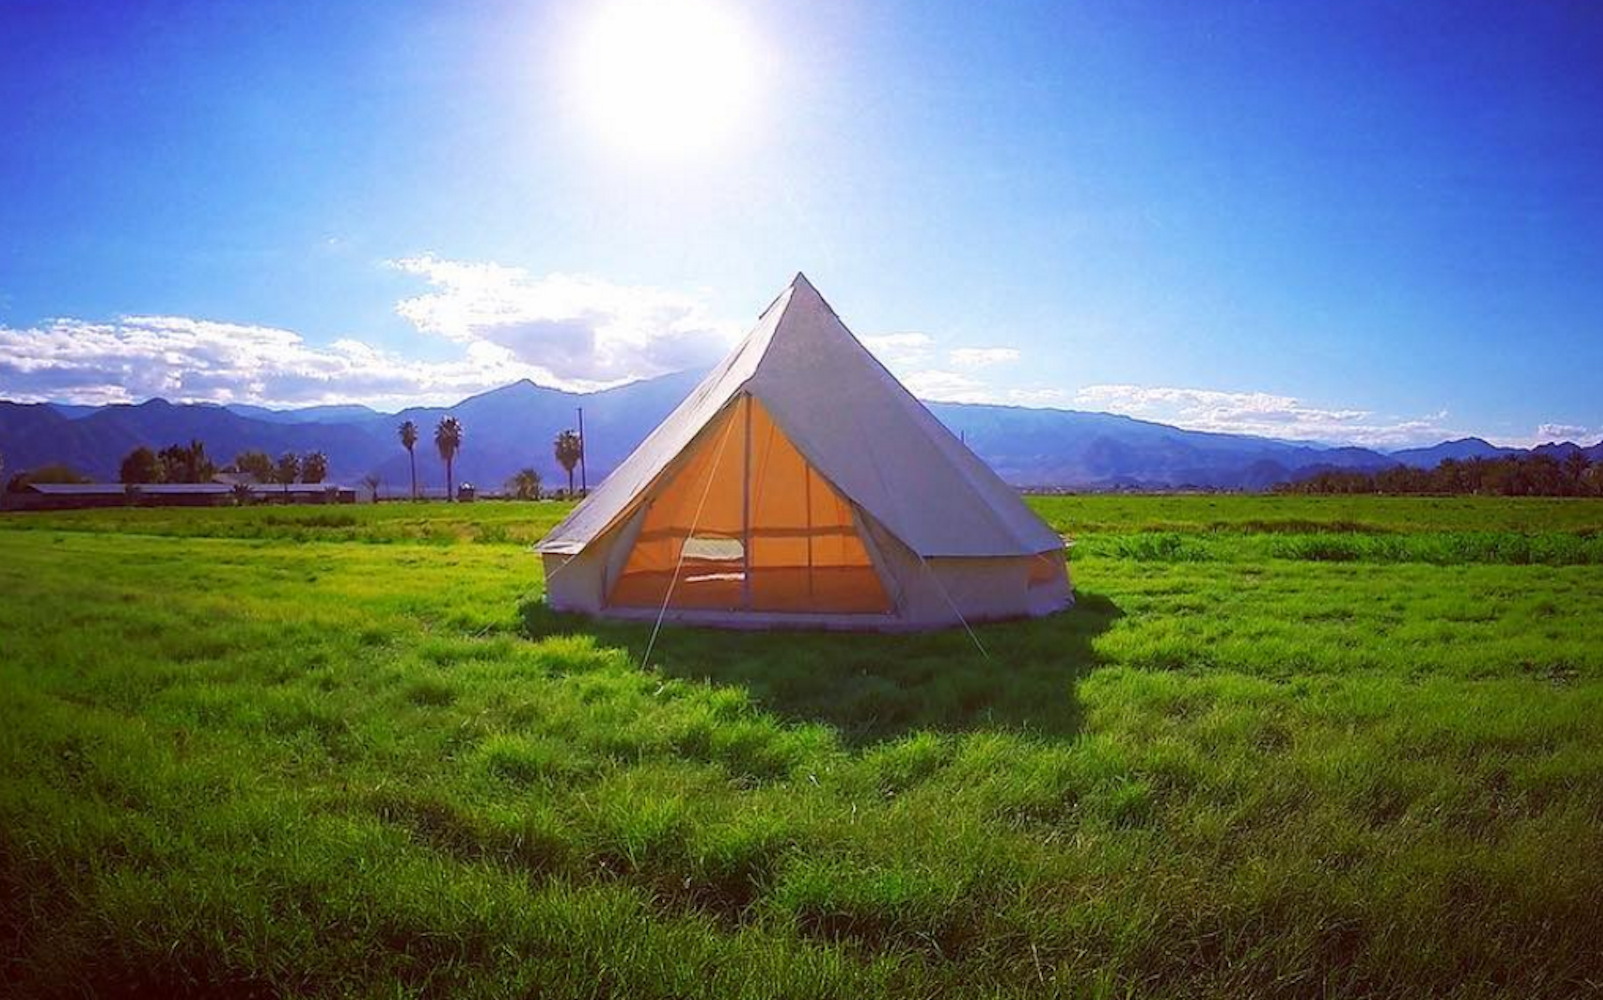 A tent at Base Camp Coachella in Indio, California